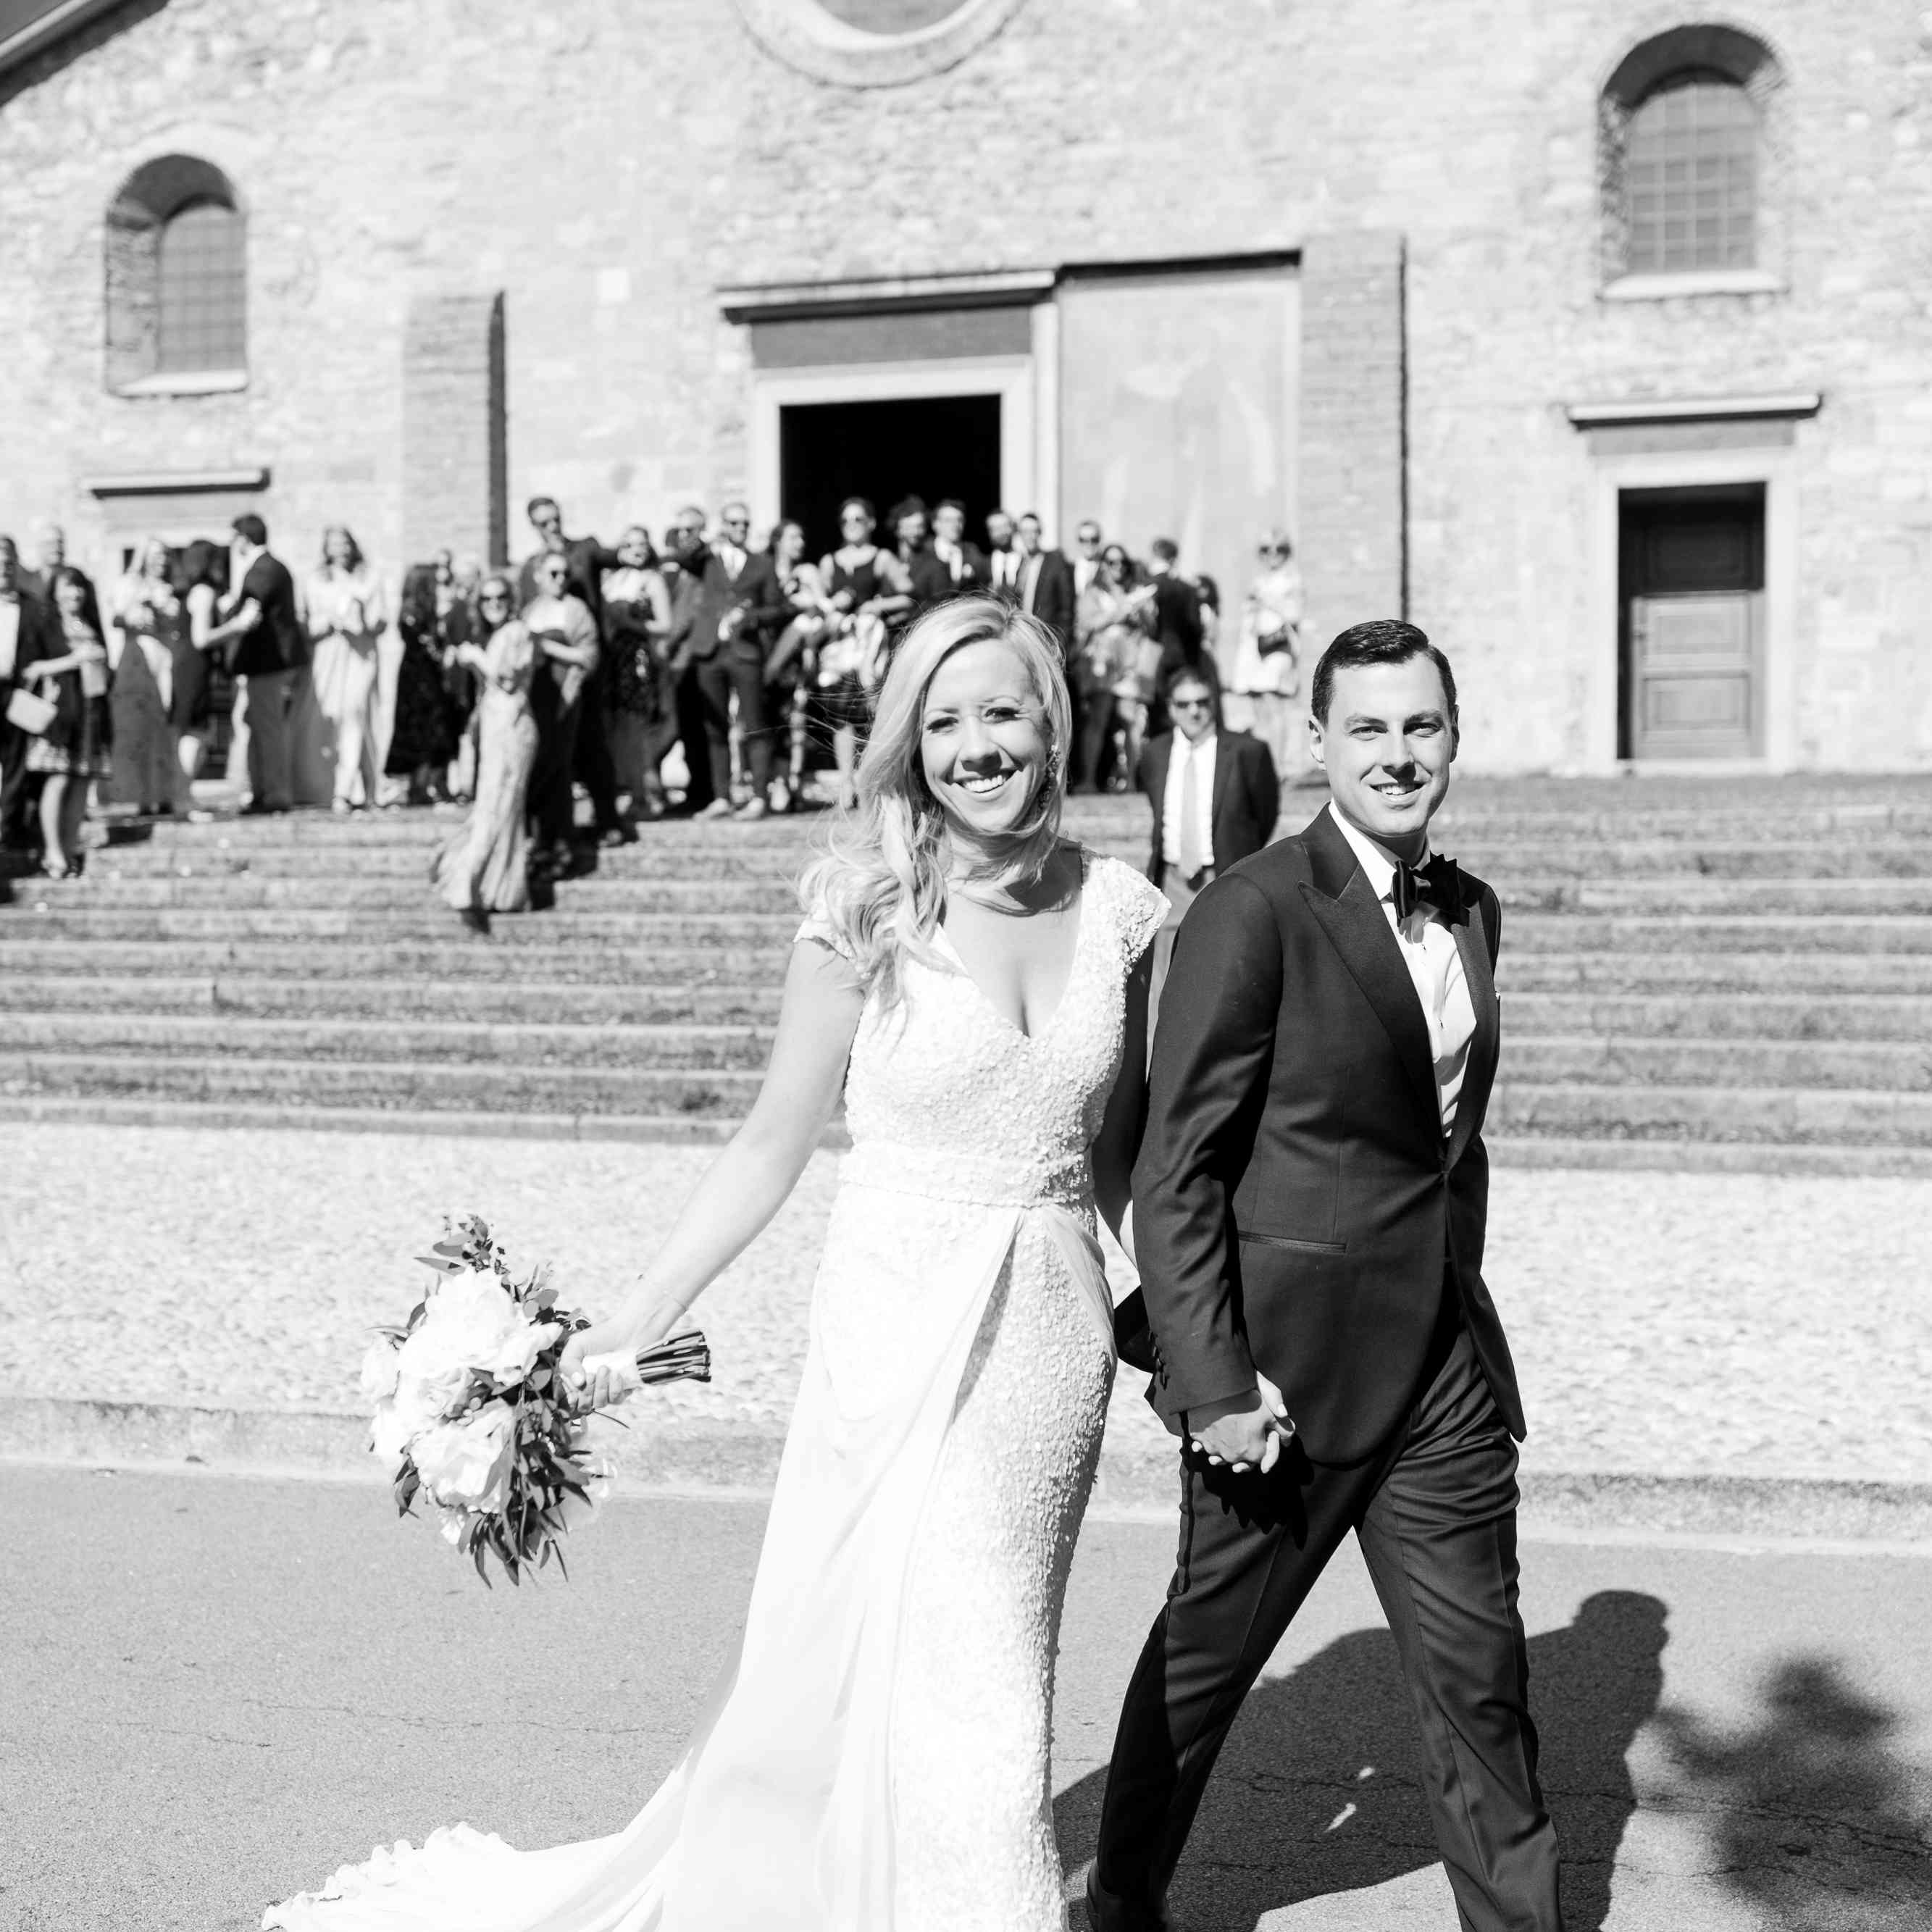 <p>Newlyweds leaving church</p><br><br>